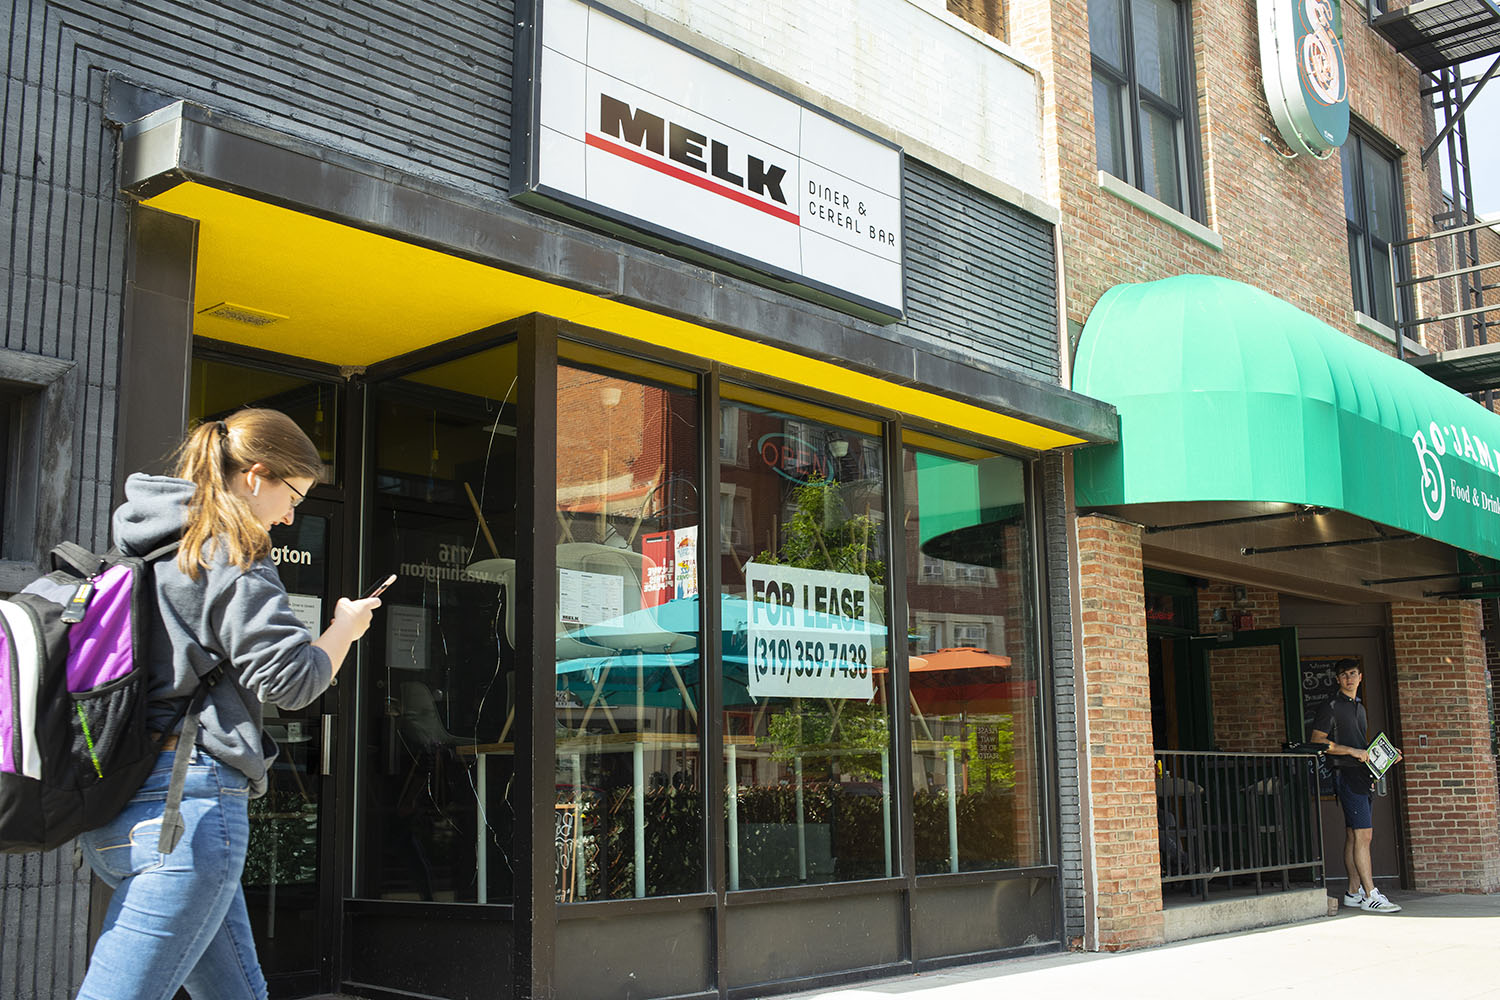 Melk's closed location is seen on Monday, June 17th, 2019.(Michael Guhin/The Daily Iowan)